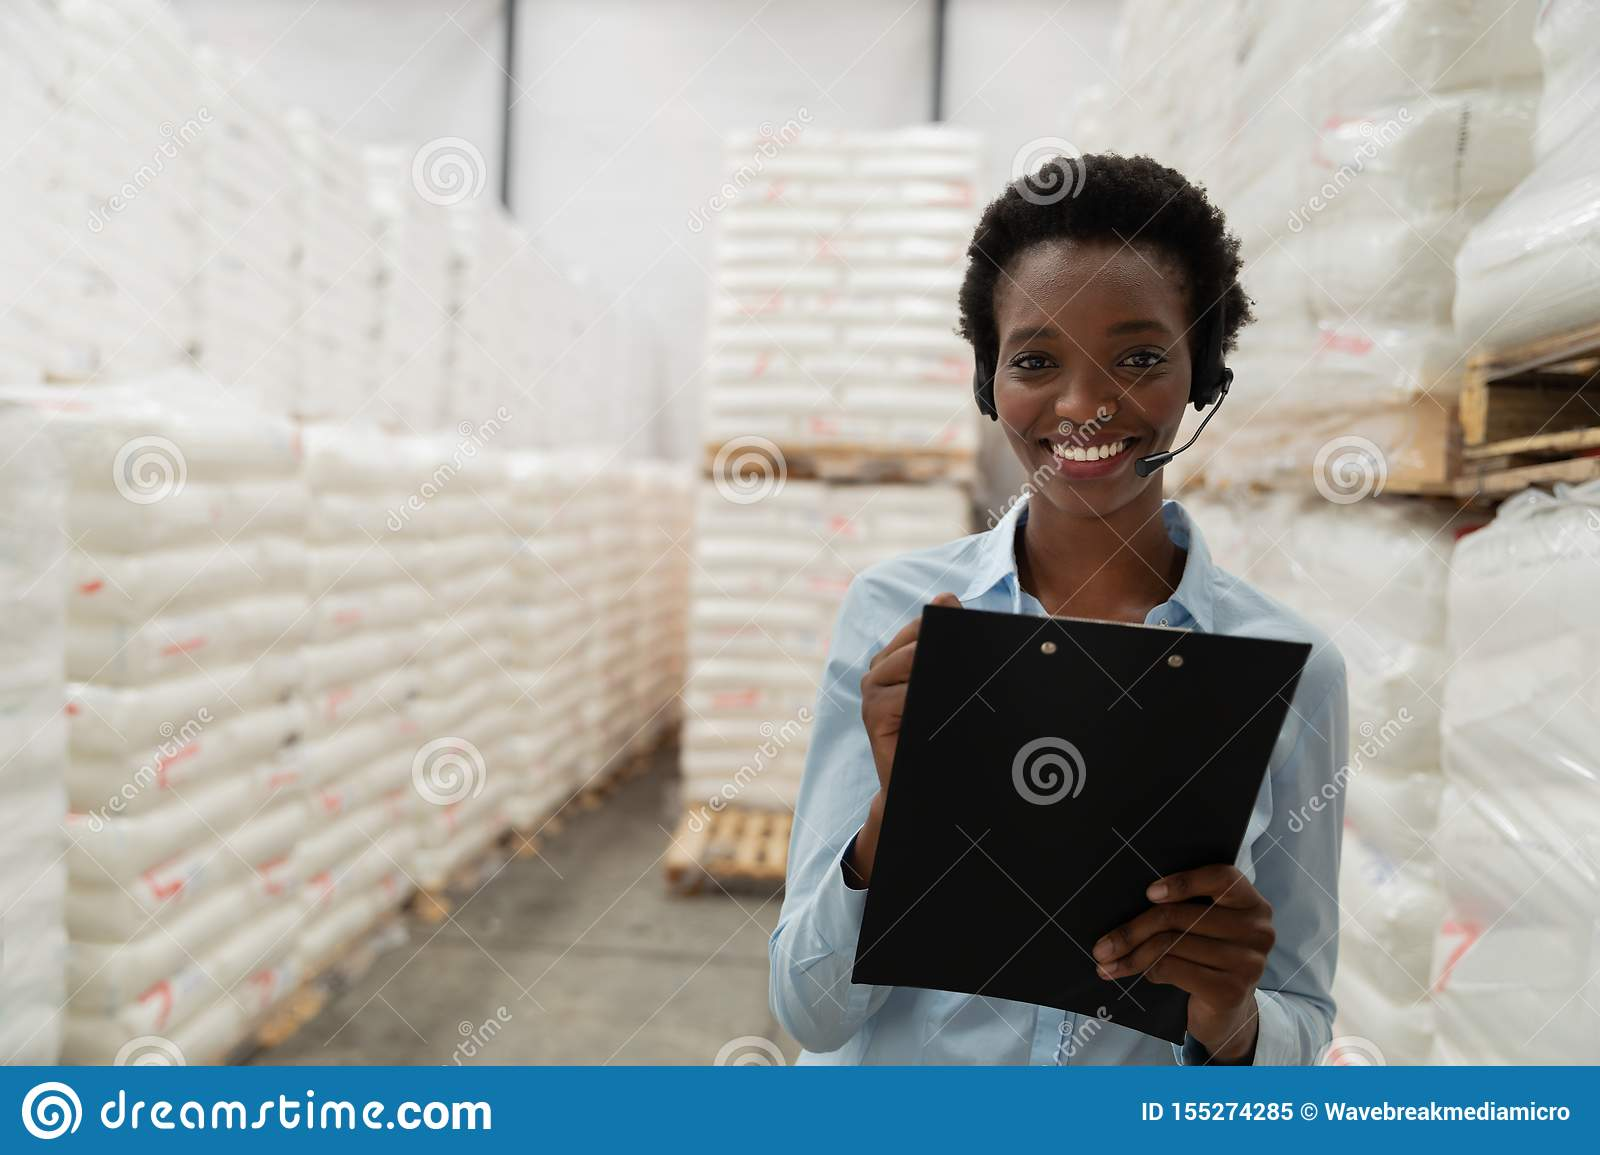 Female manager with headset writing on clipboard in warehouse